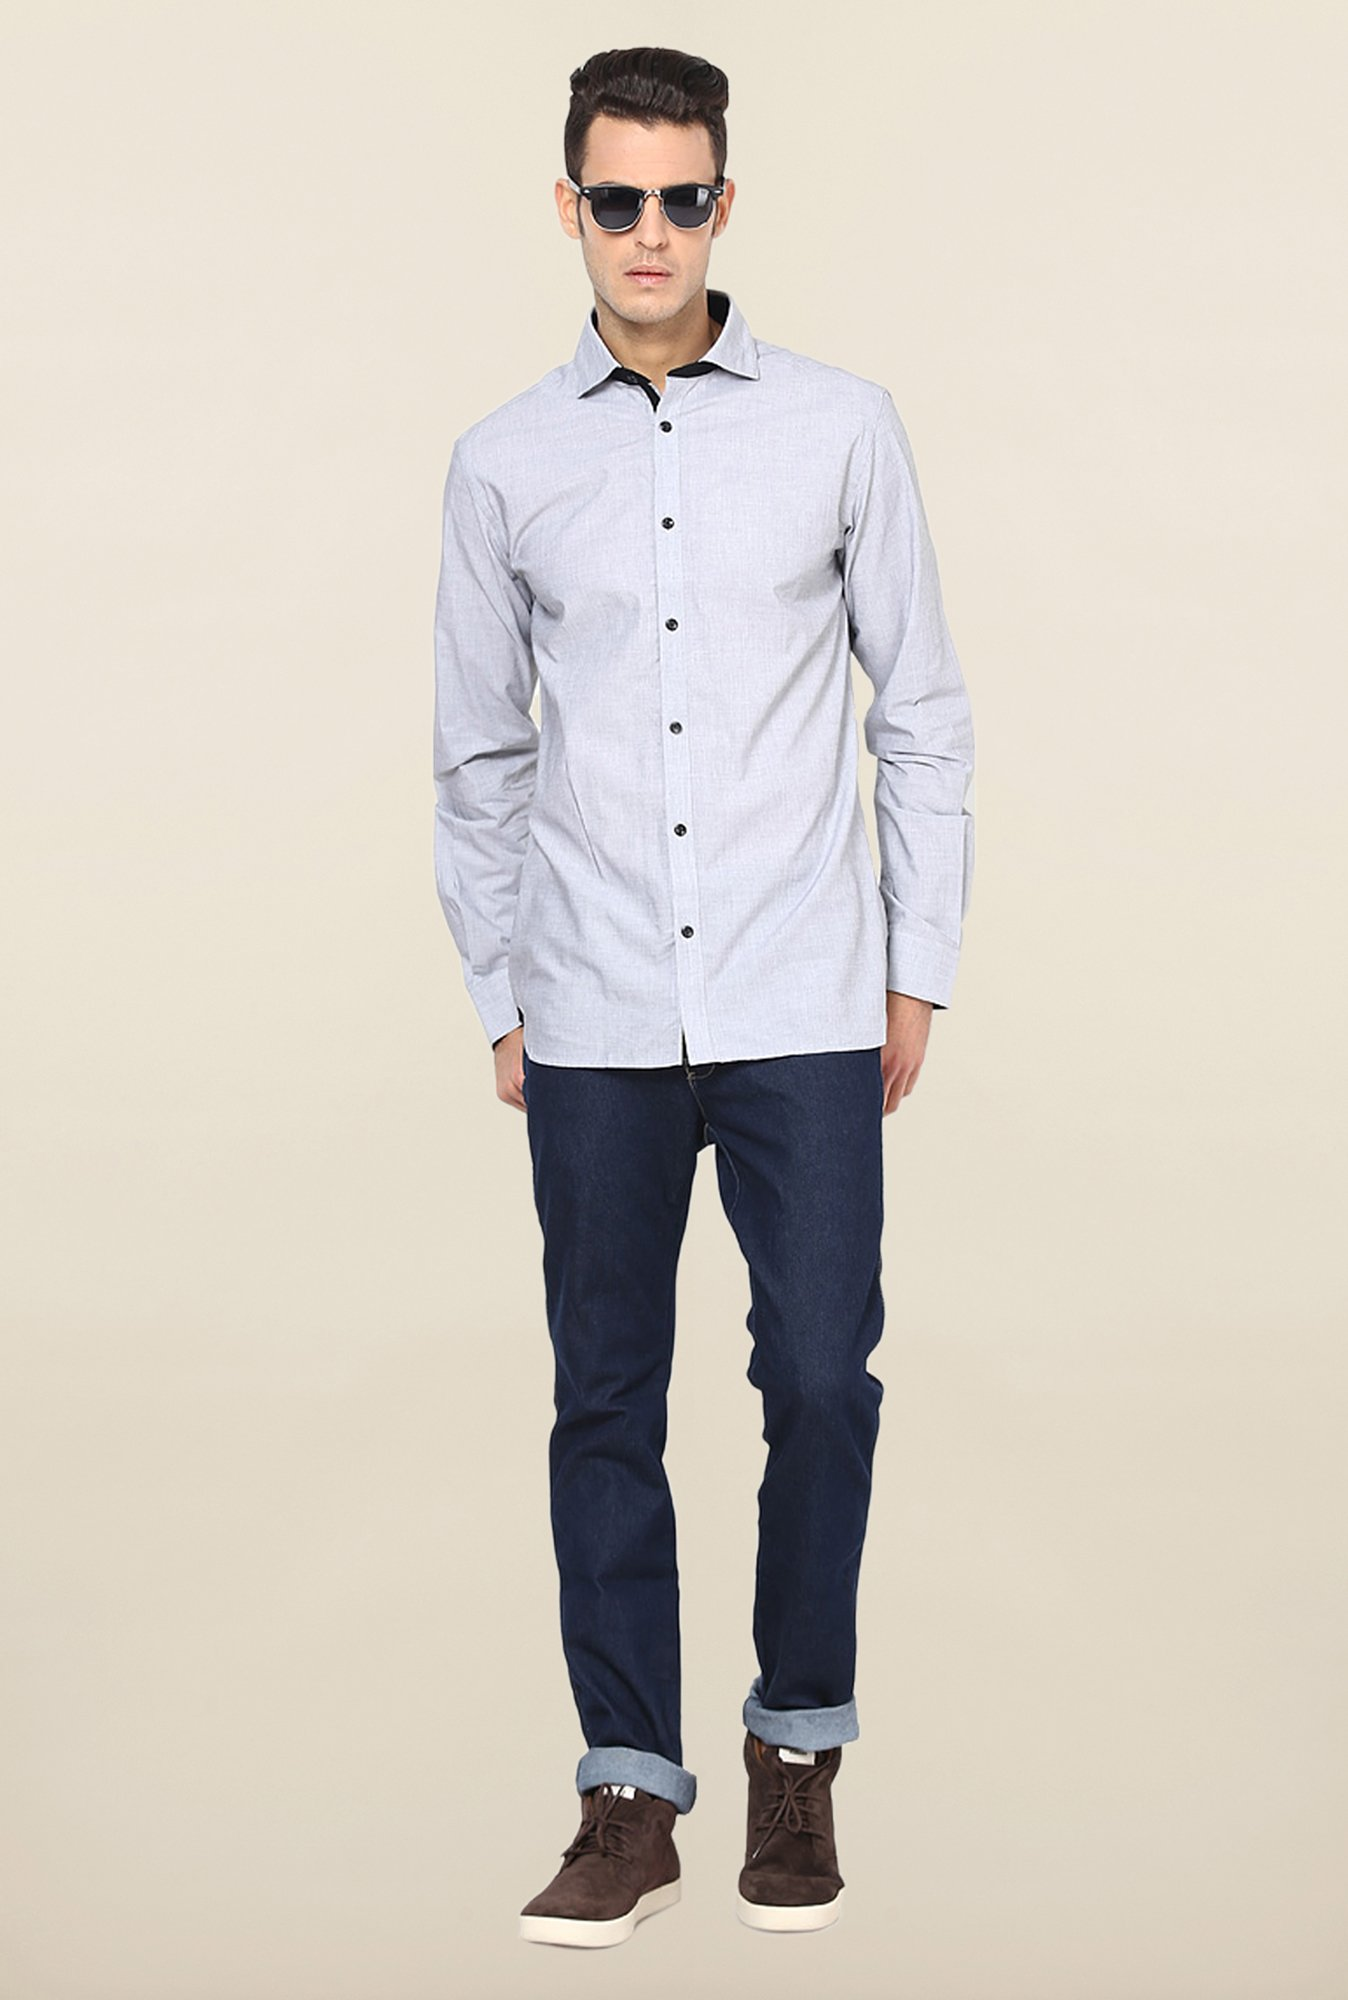 Jack & Jones Blue Solid Slim Fit Cotton Casual Shirt